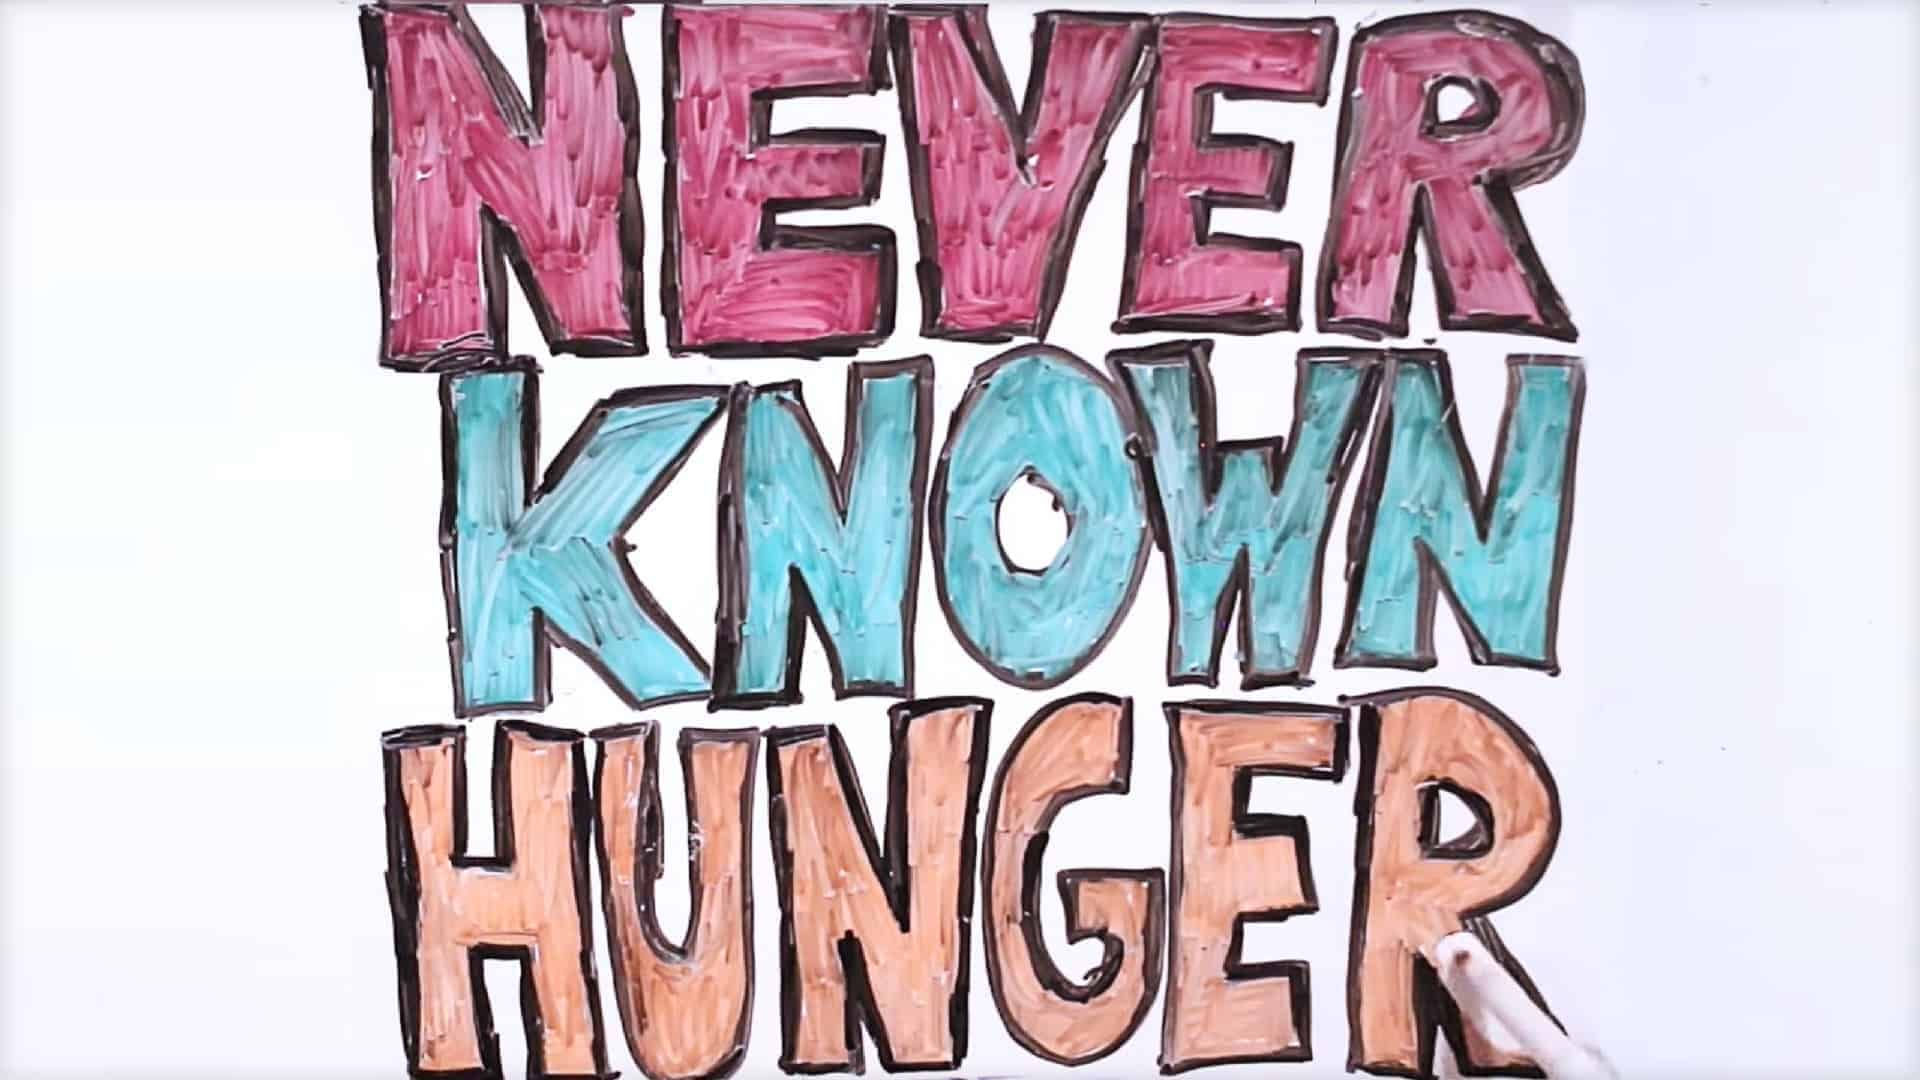 The phrase: never known hunger is written in large capital letters on a white board. Each word is a different color: red, blue and orange and the letters are outlined in black.